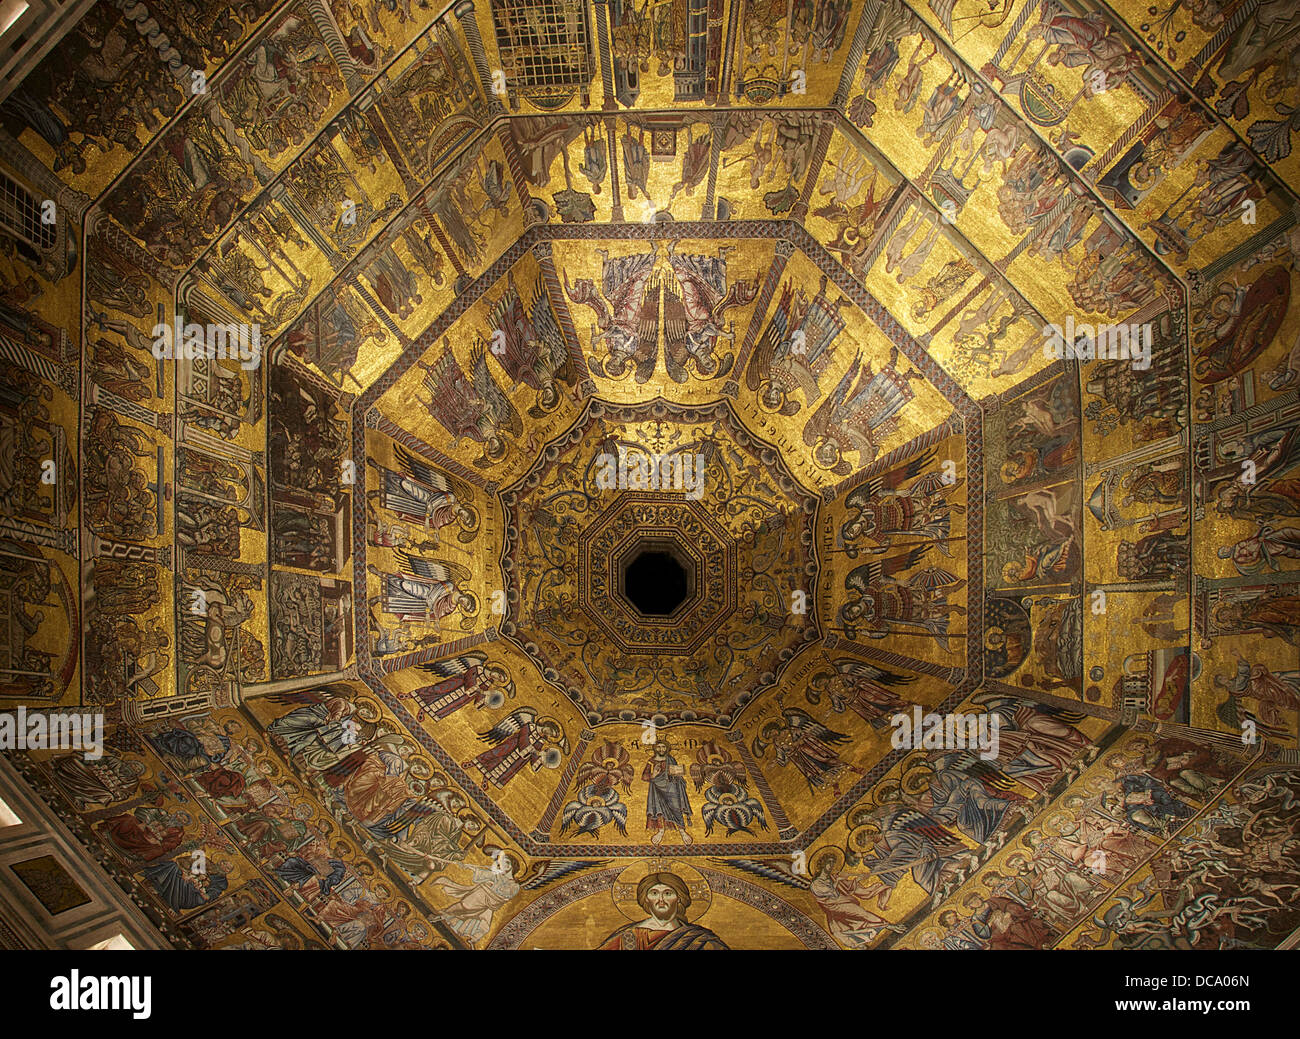 Fragments of the central part of the mosaic of the ceiling of the Baptistery of Florence, Italy. 13th & 14th - Stock Image